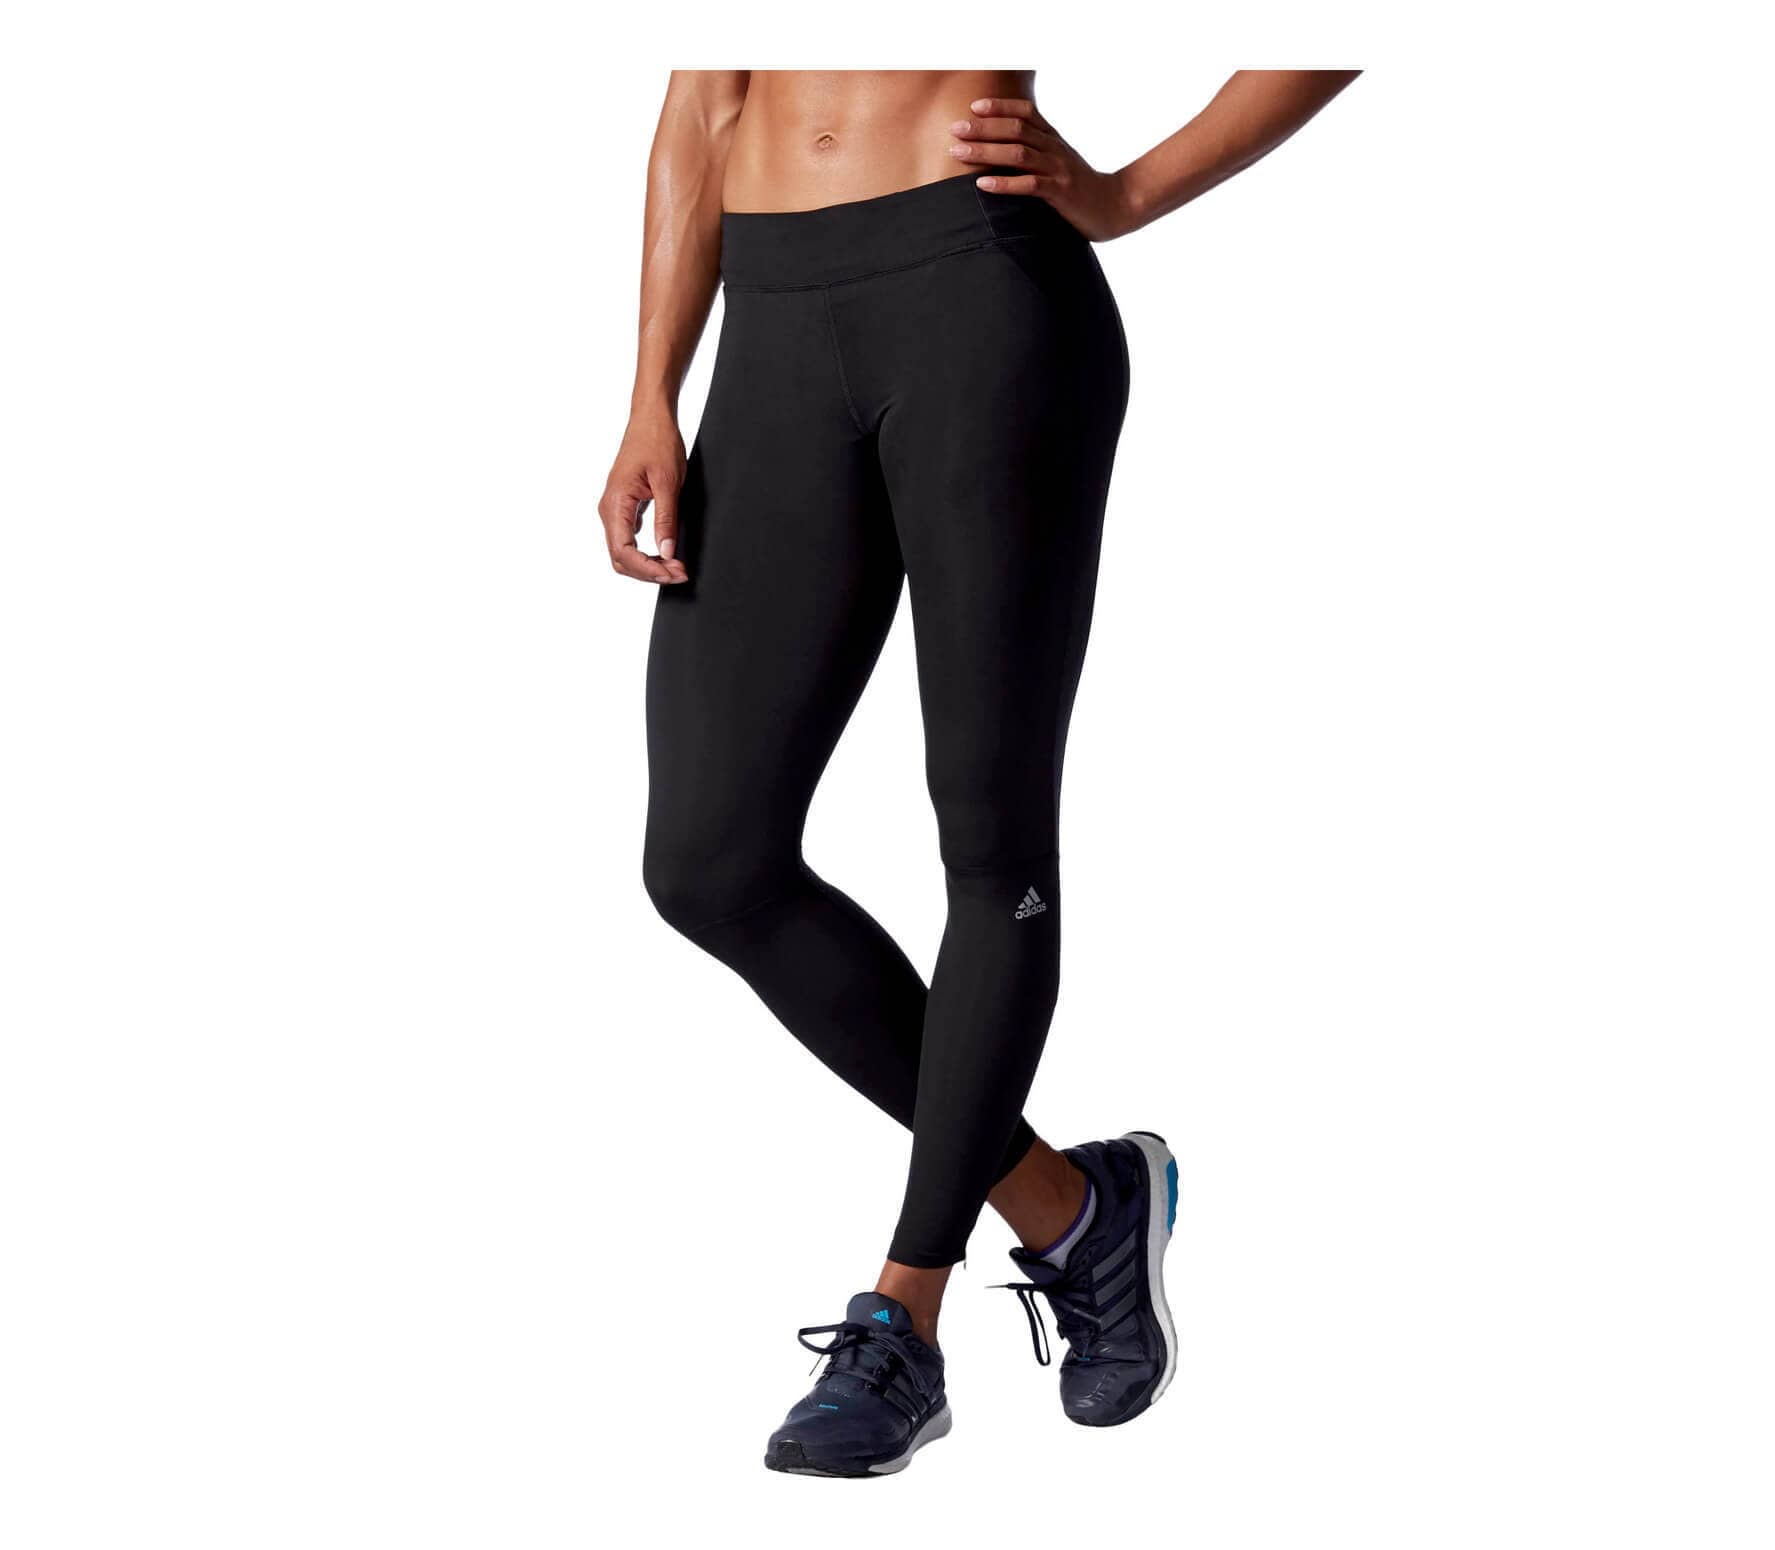 Da Adidas Pantaloncini Corsa Donna nero Long Tight Supernova wRXqRxgaZ